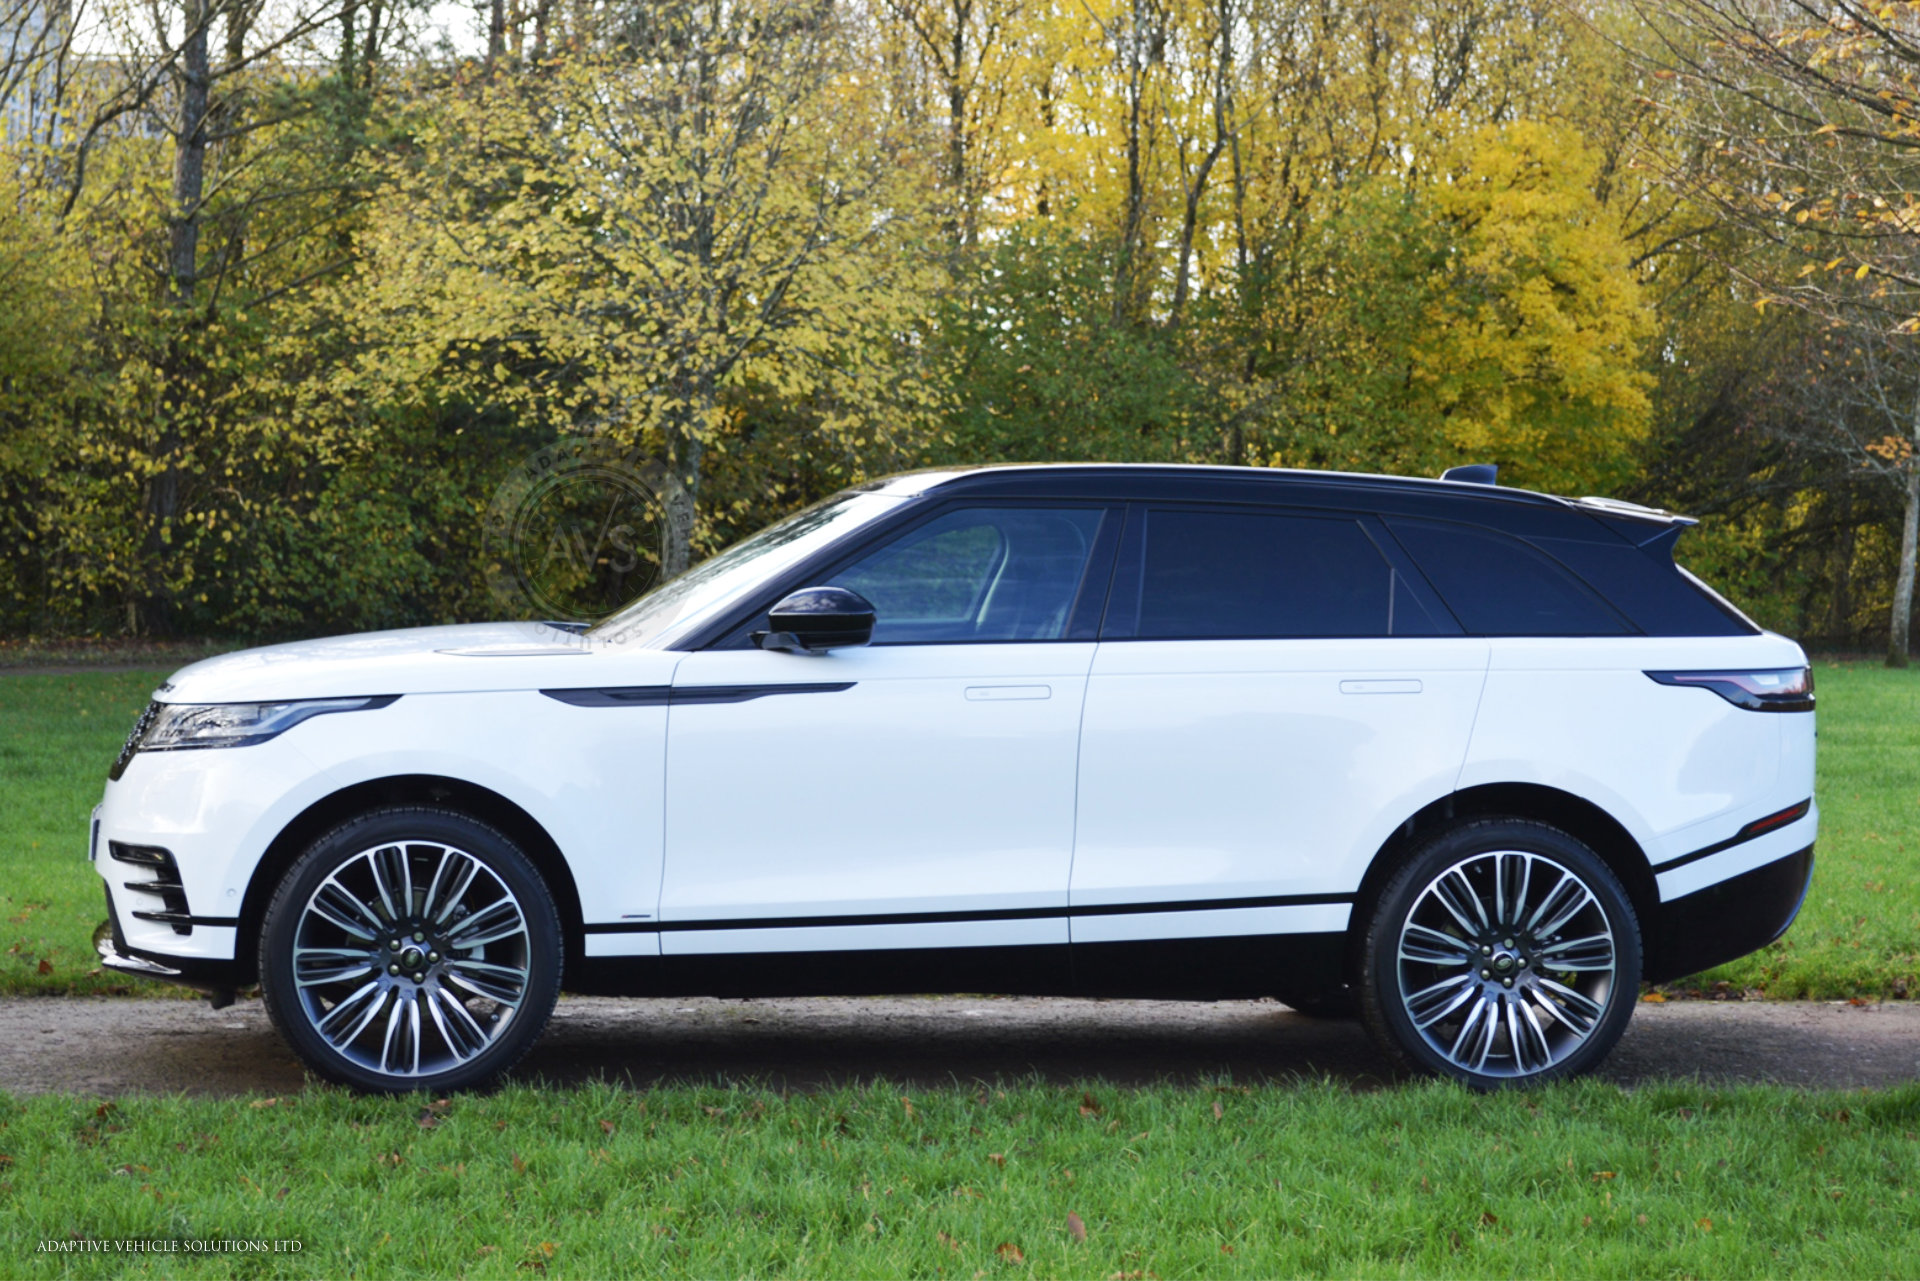 range rover velar r dynamic se white 01 adaptive vehicle solutions ltd. Black Bedroom Furniture Sets. Home Design Ideas